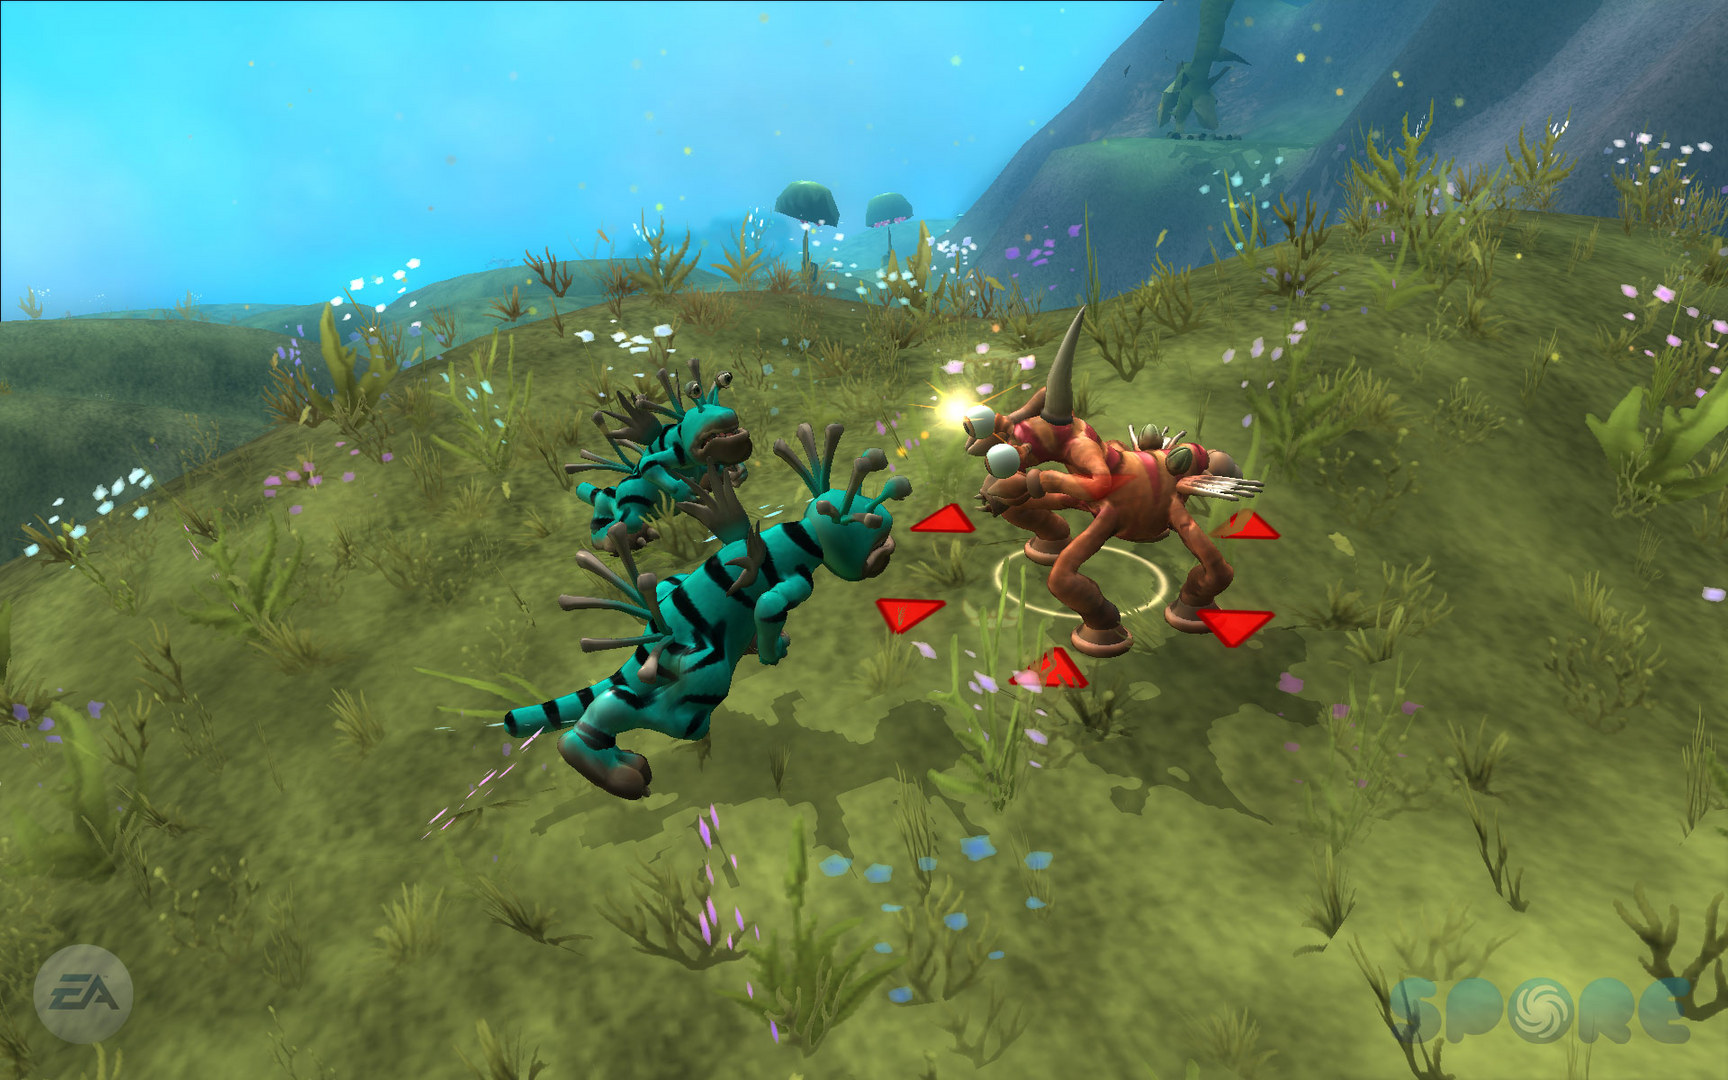 Download spore for free full game.